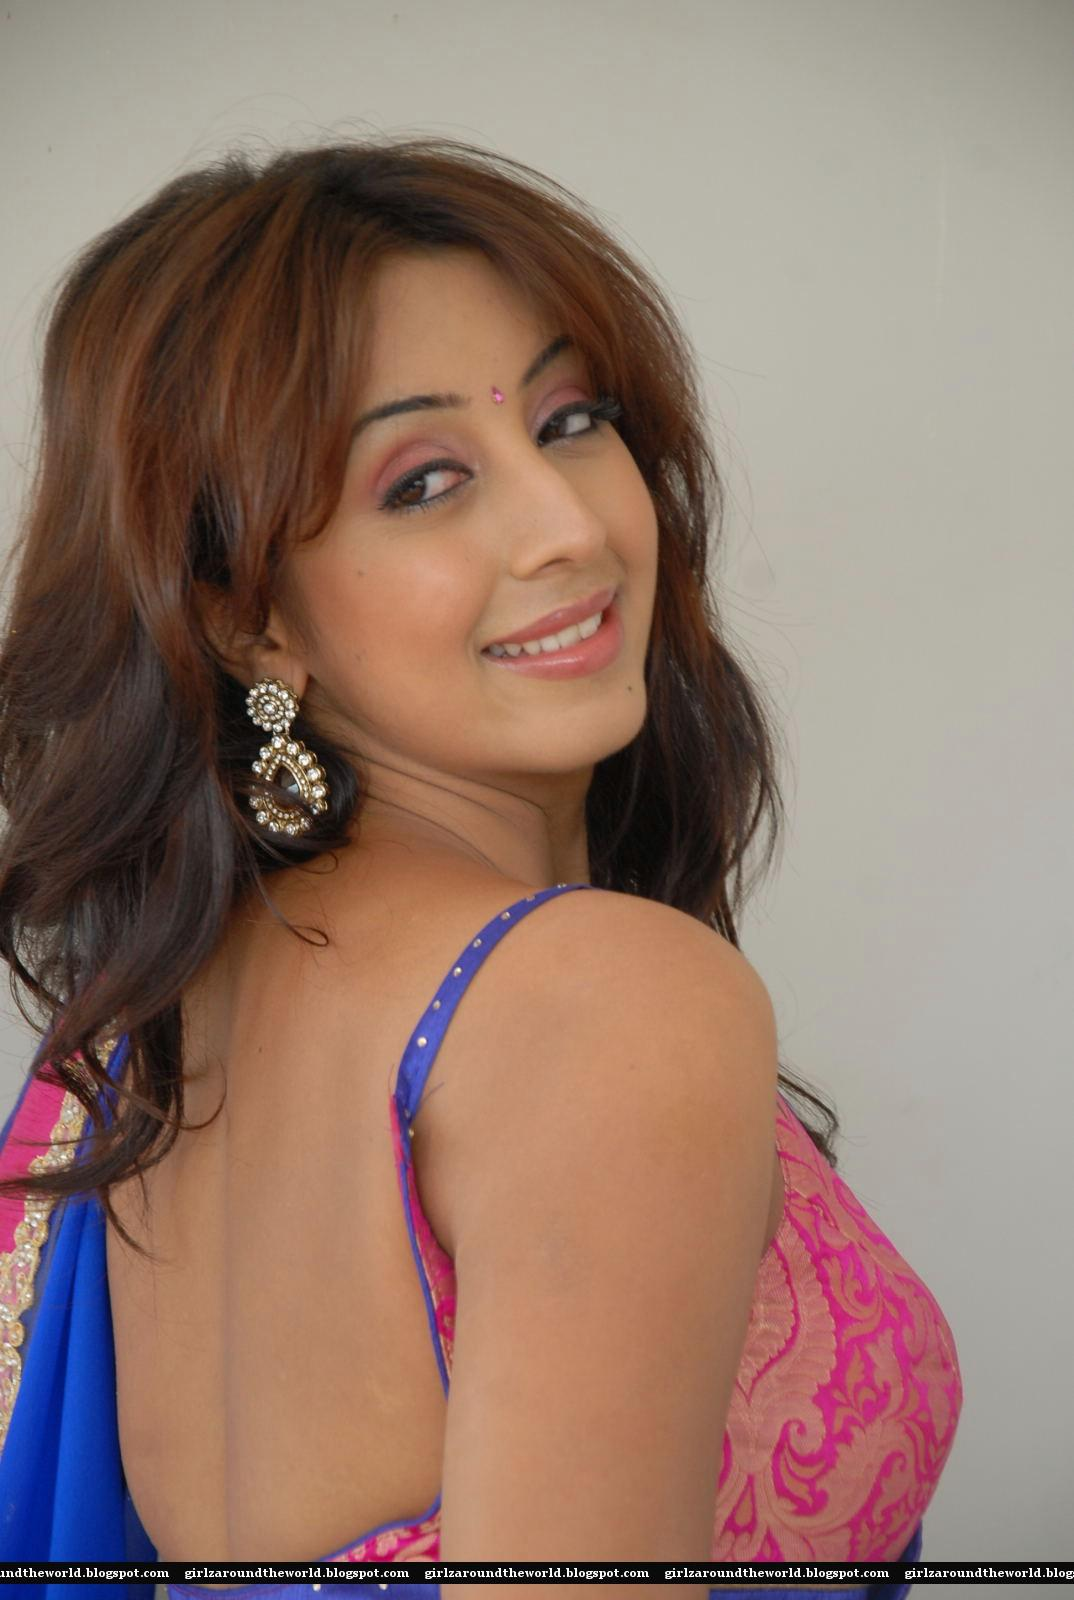 Hot Actress Navel N Spicy Pics: May 2013 Images | FemaleCelebrity